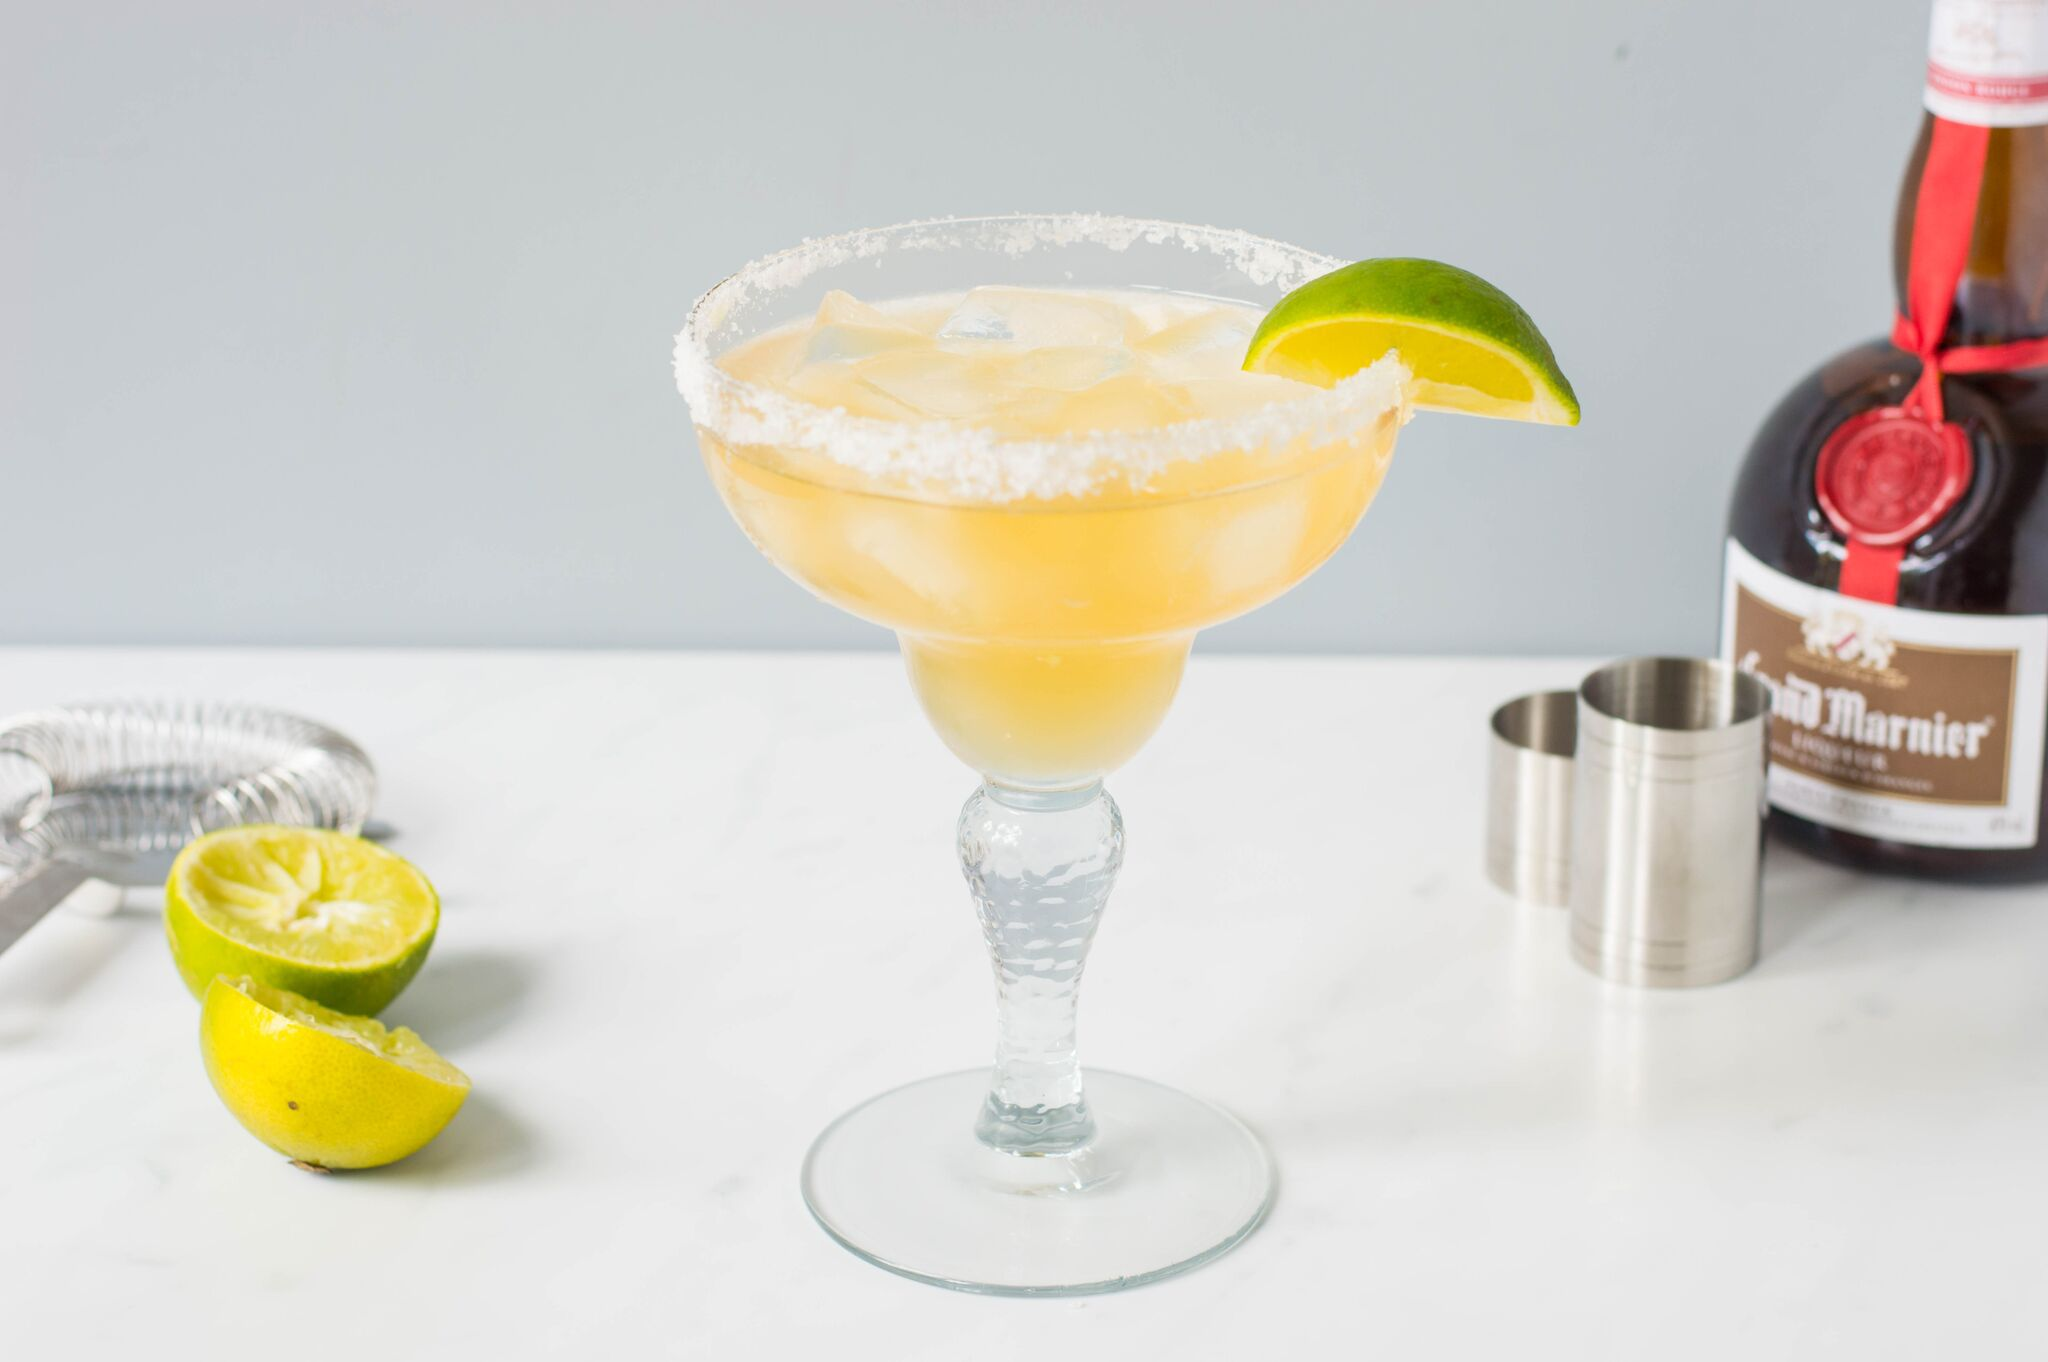 Cadillac Margarita Recipe With Reposado Tequila